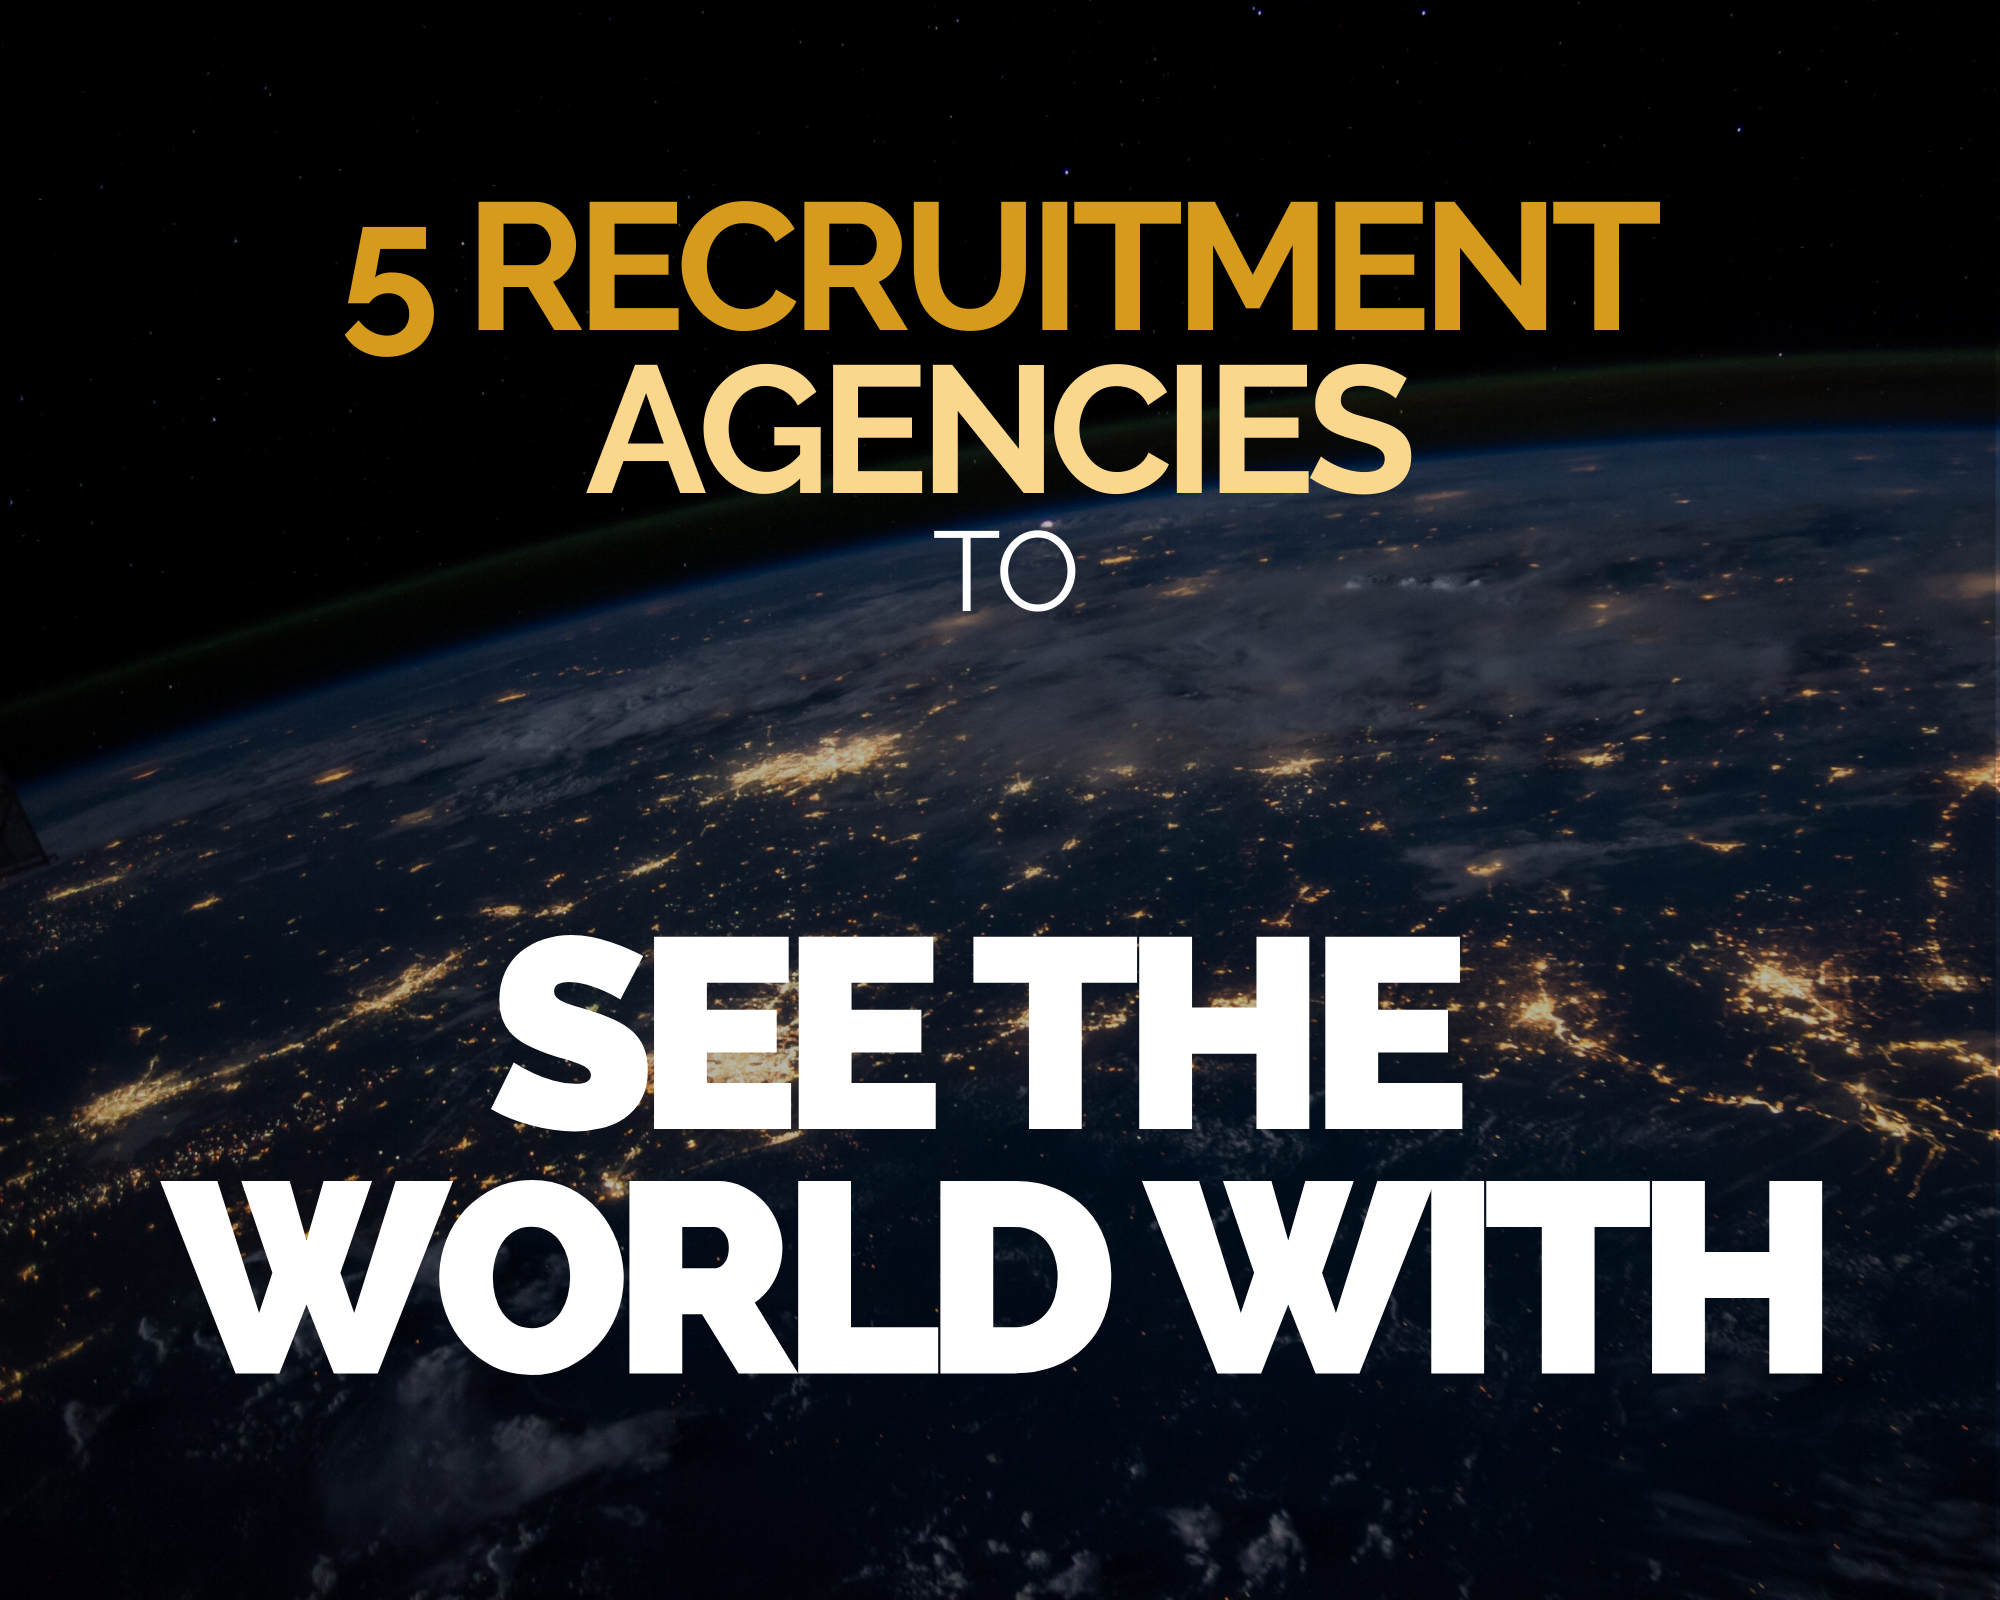 5 Recruitment Agencies to See the World With